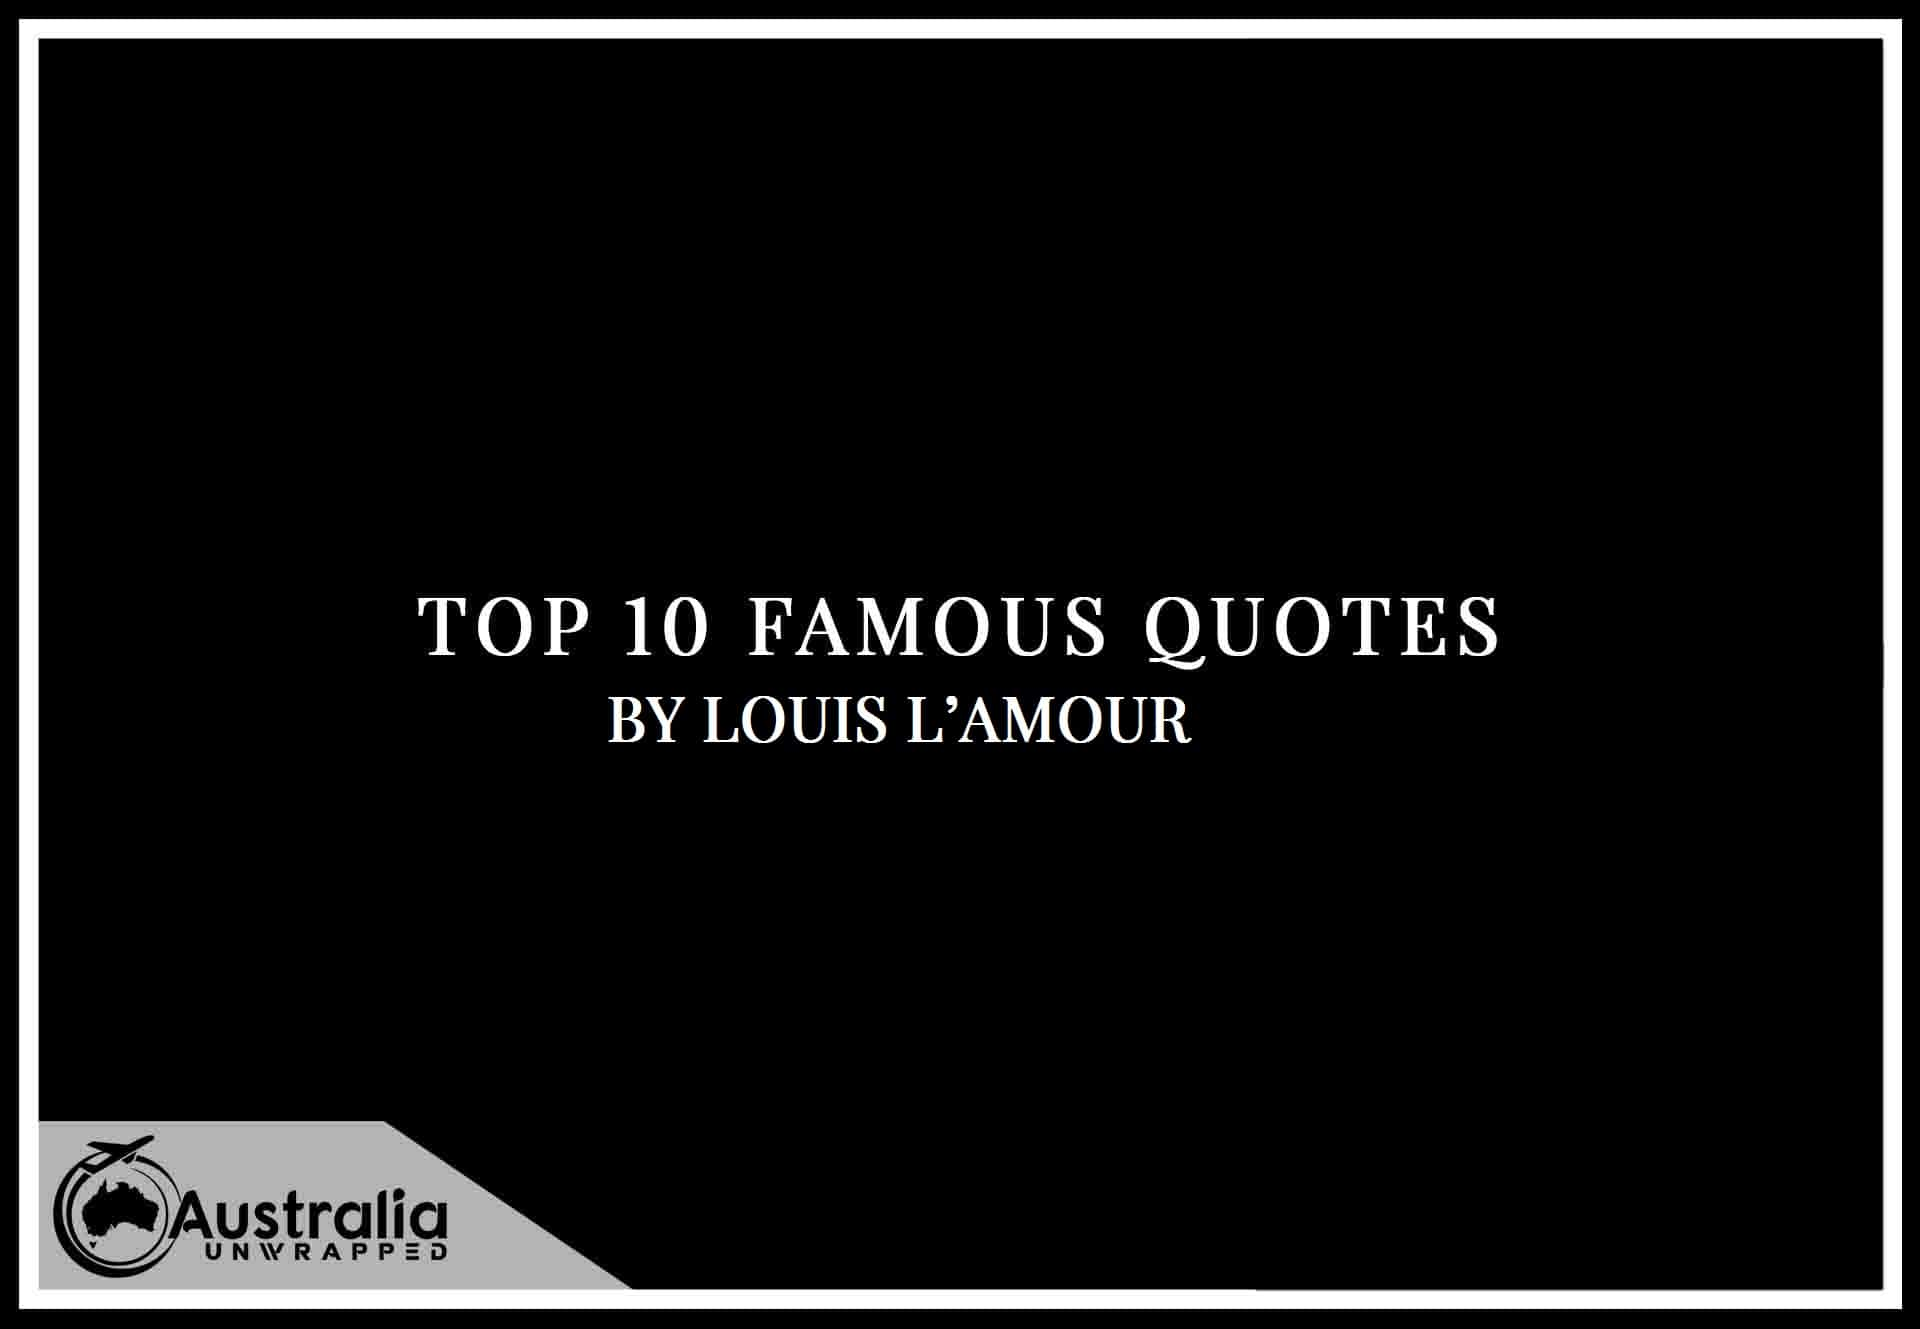 Louis L'Amour's Top 10 Popular and Famous Quotes